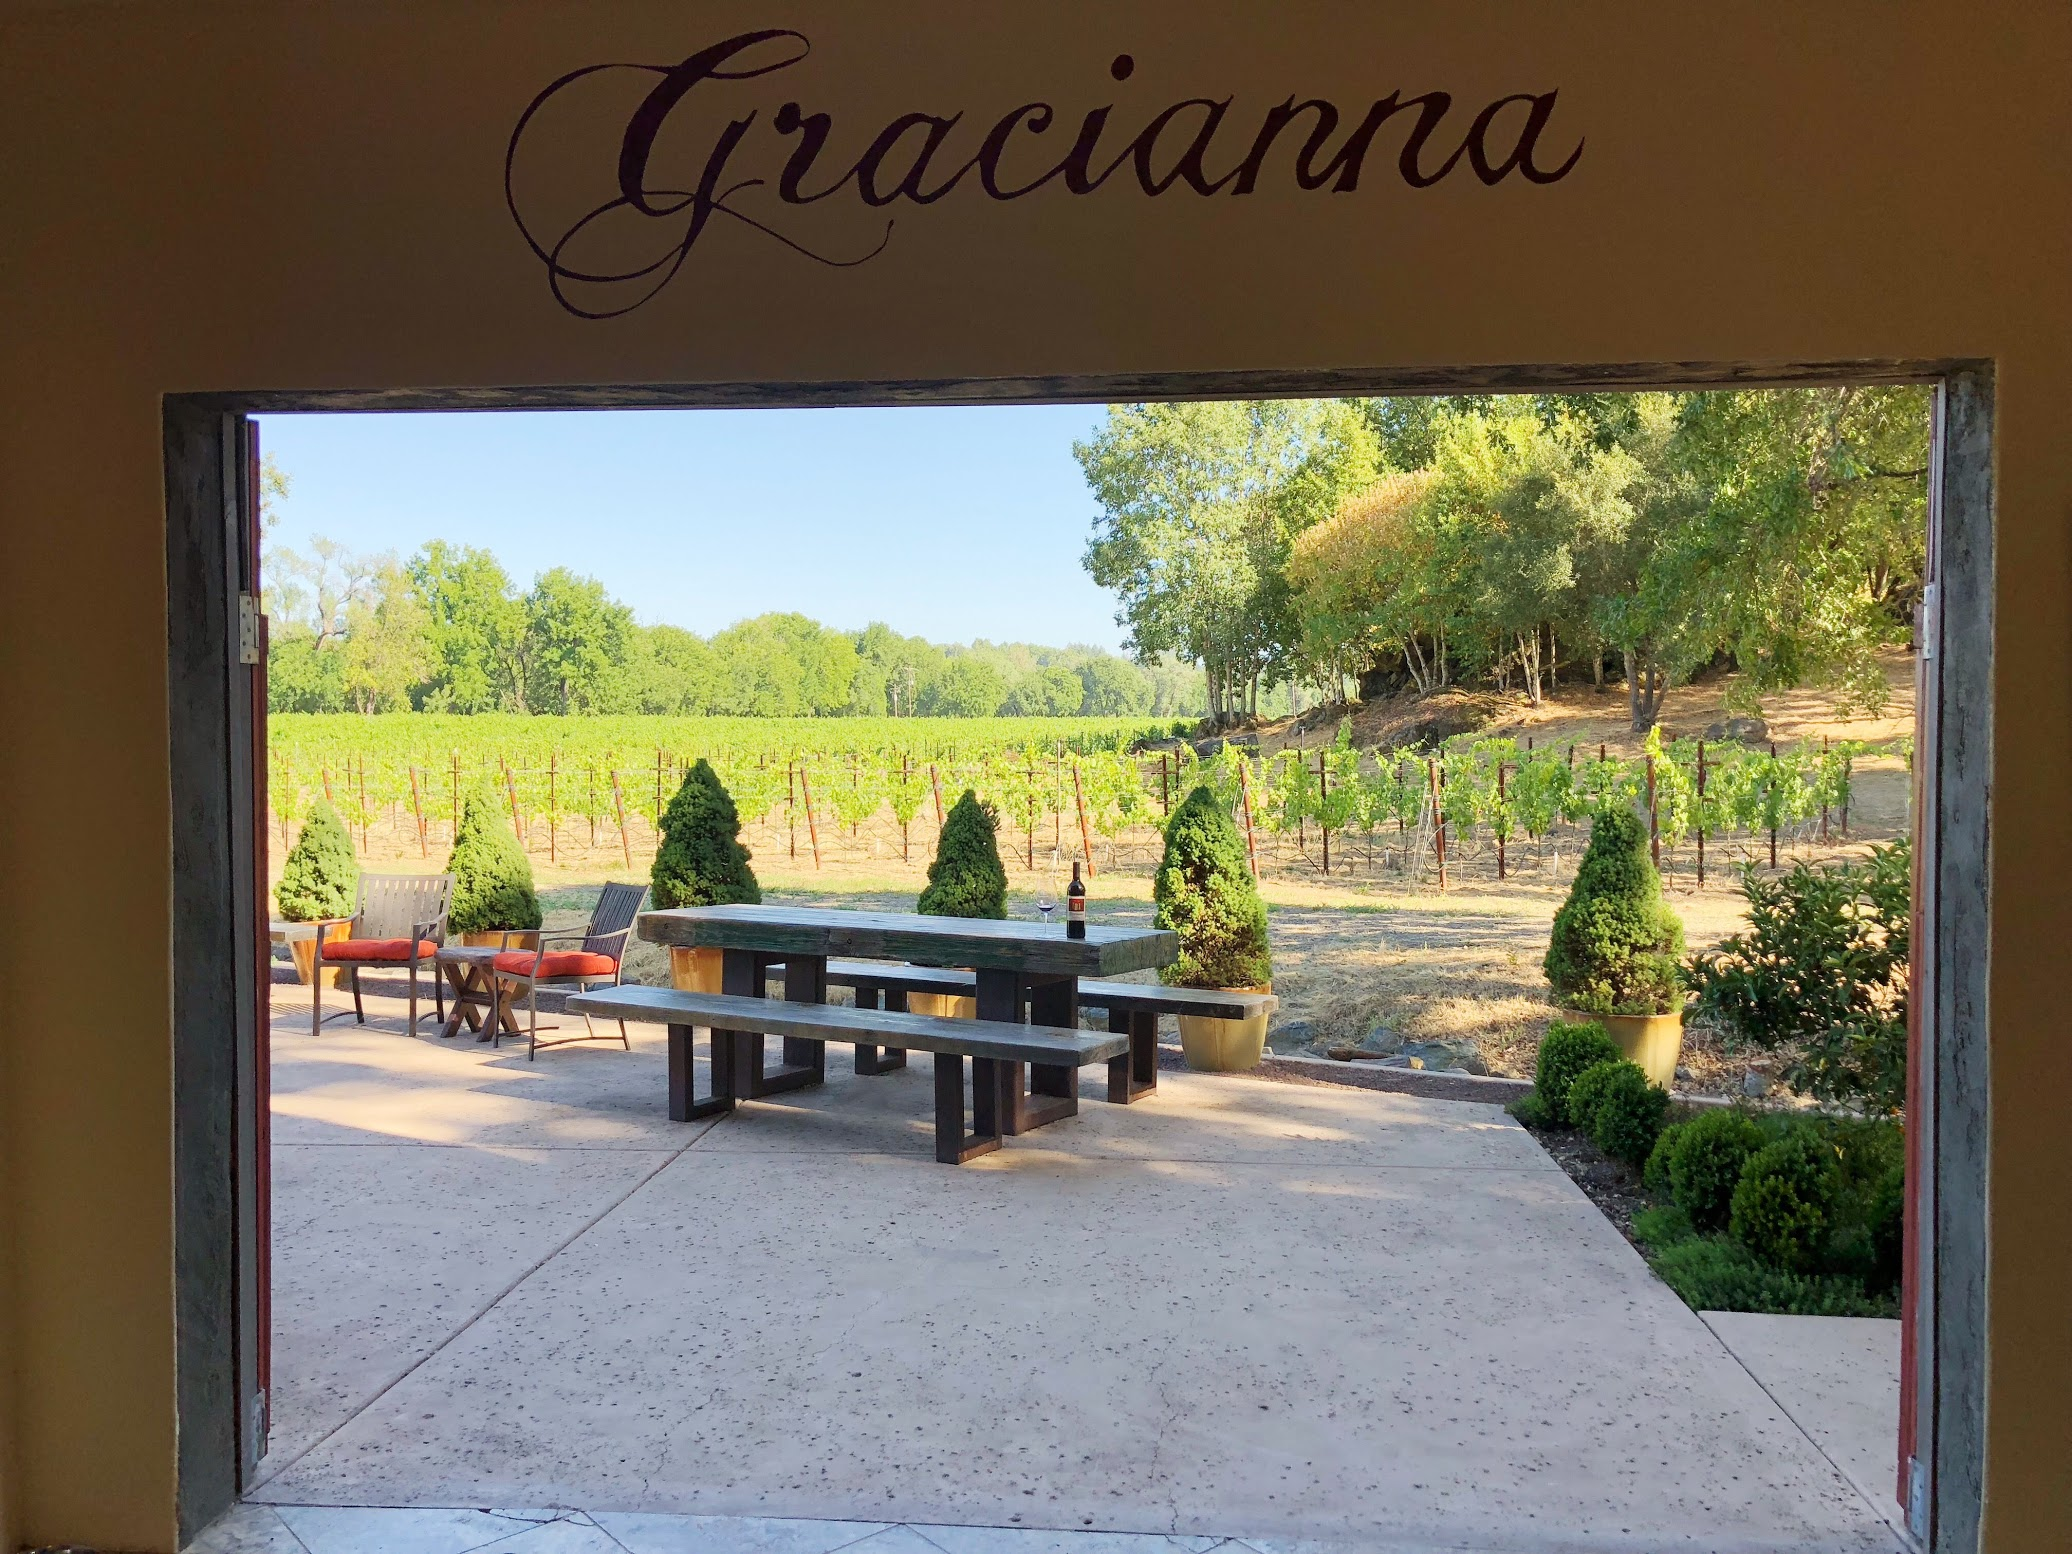 Gracianna Winery Russian River